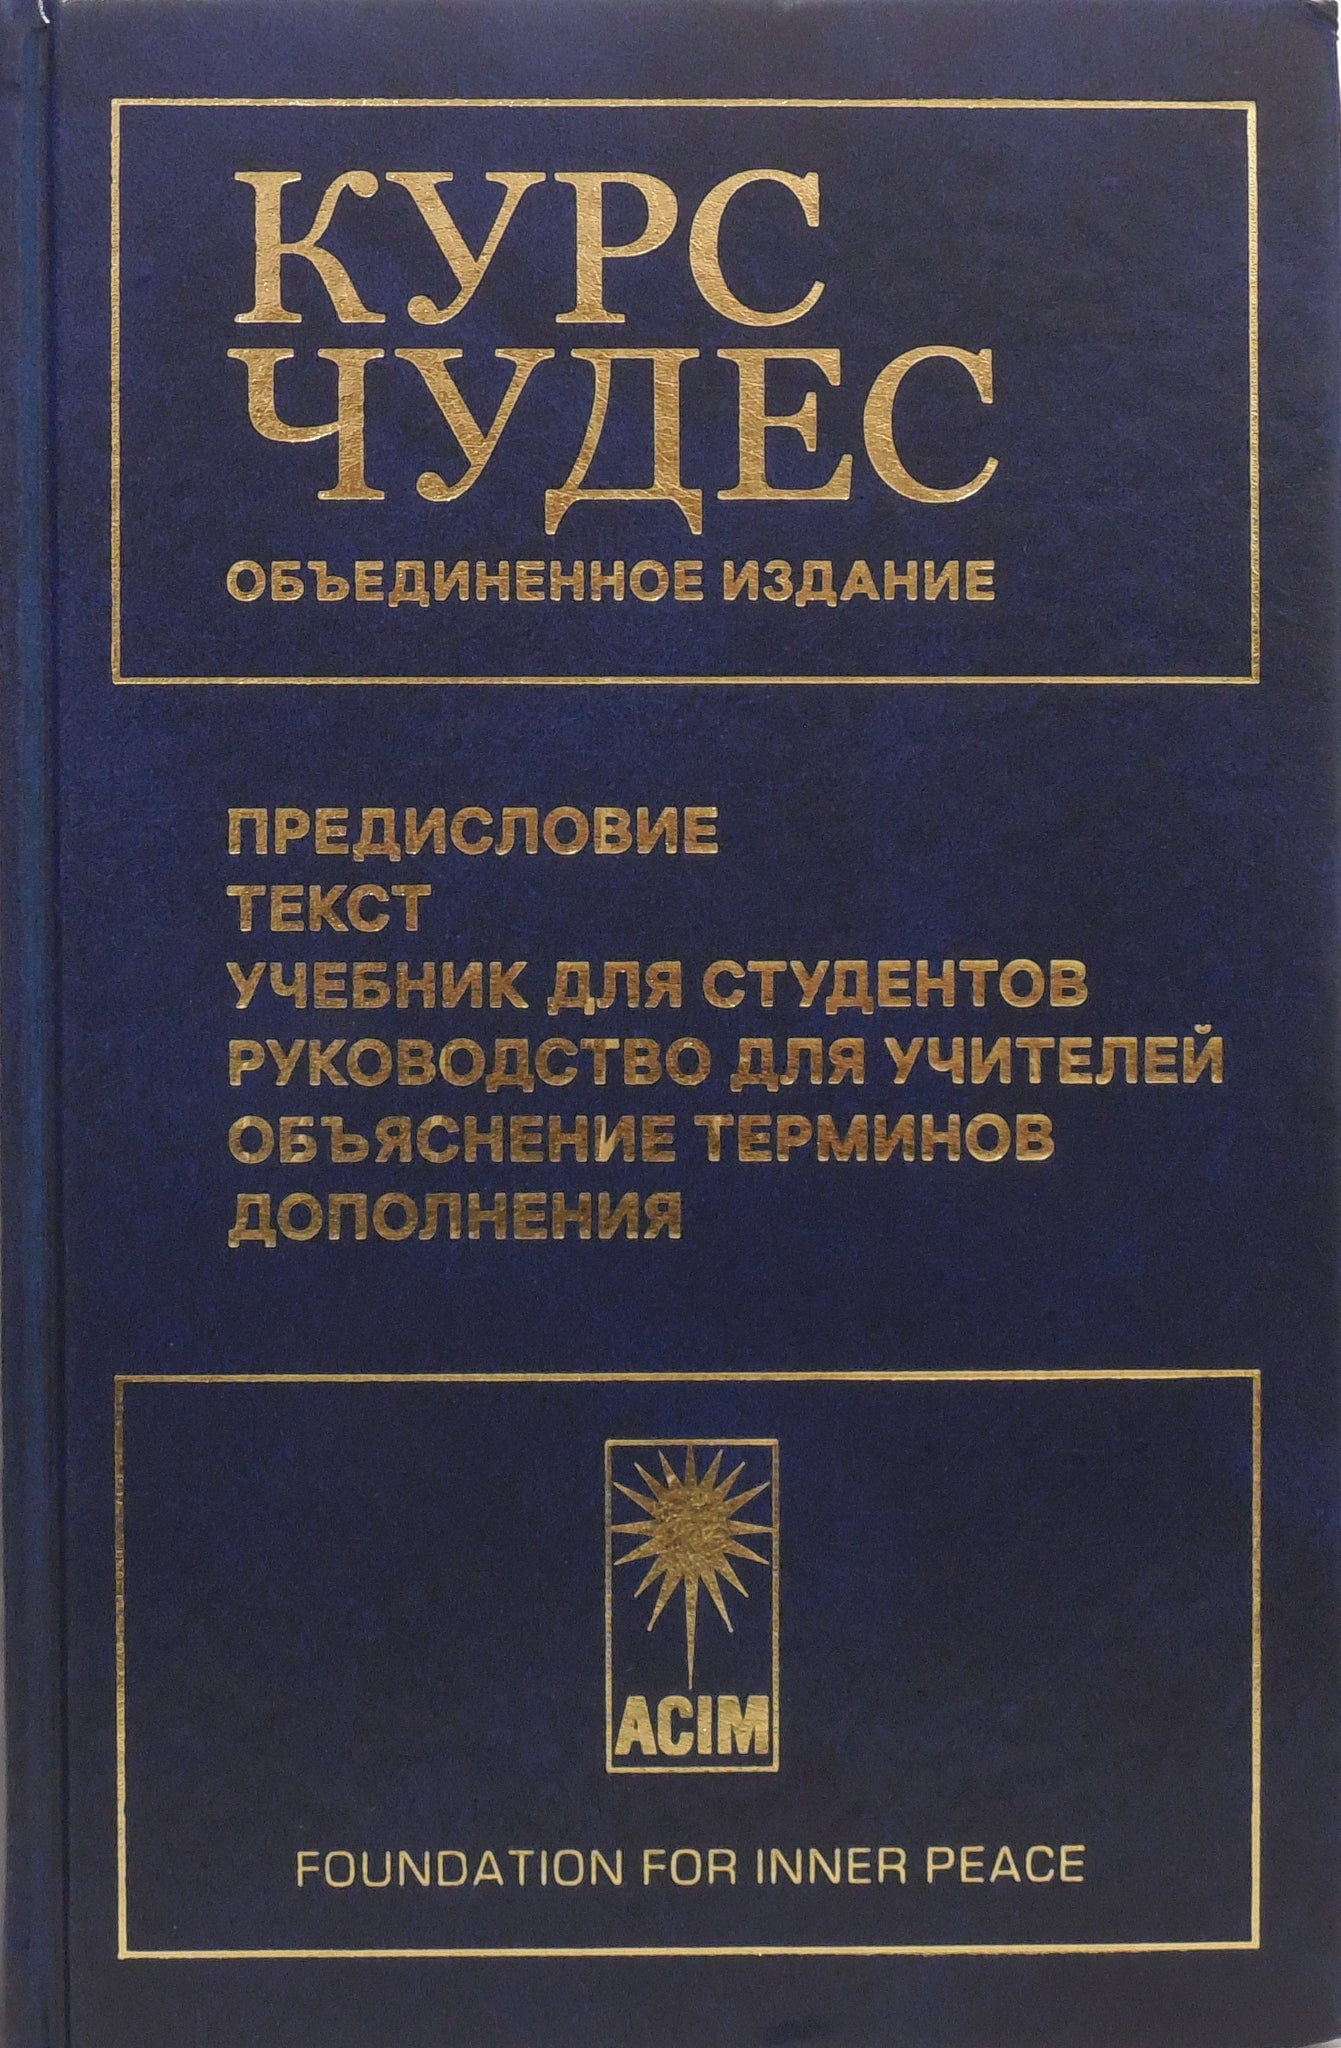 KYPC ЧУДEC - Russian 2nd Edition (Revised 2017)   ***TEMPORARILY UNAVAILABLE TO SHIP DUE TO COVID***